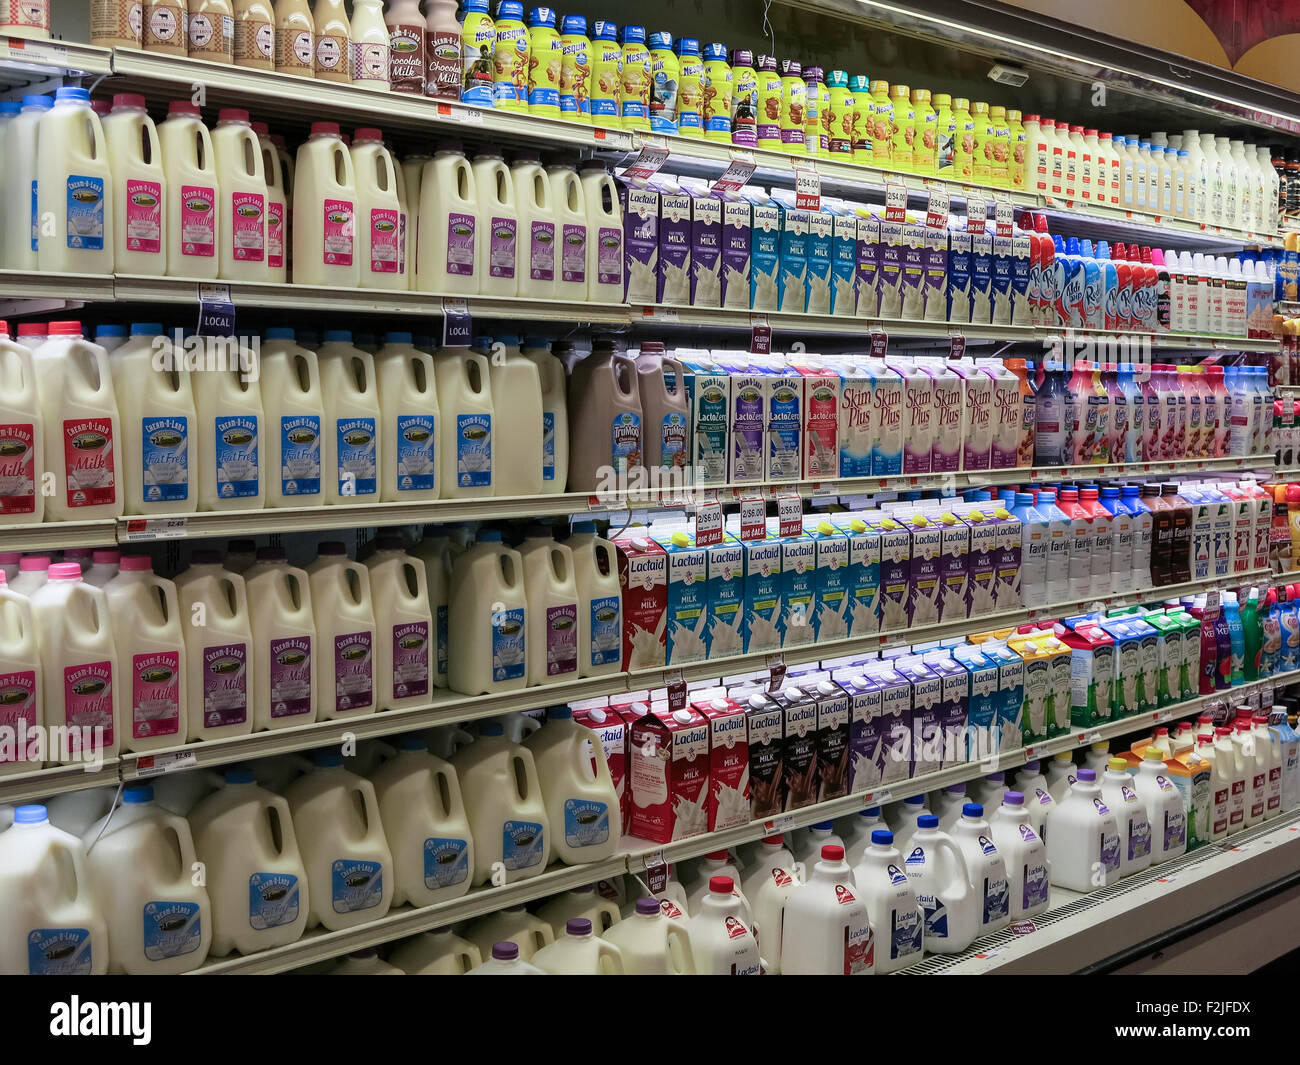 Fairway Shop Dairy Aisle Fairway Super Market New York City Usa